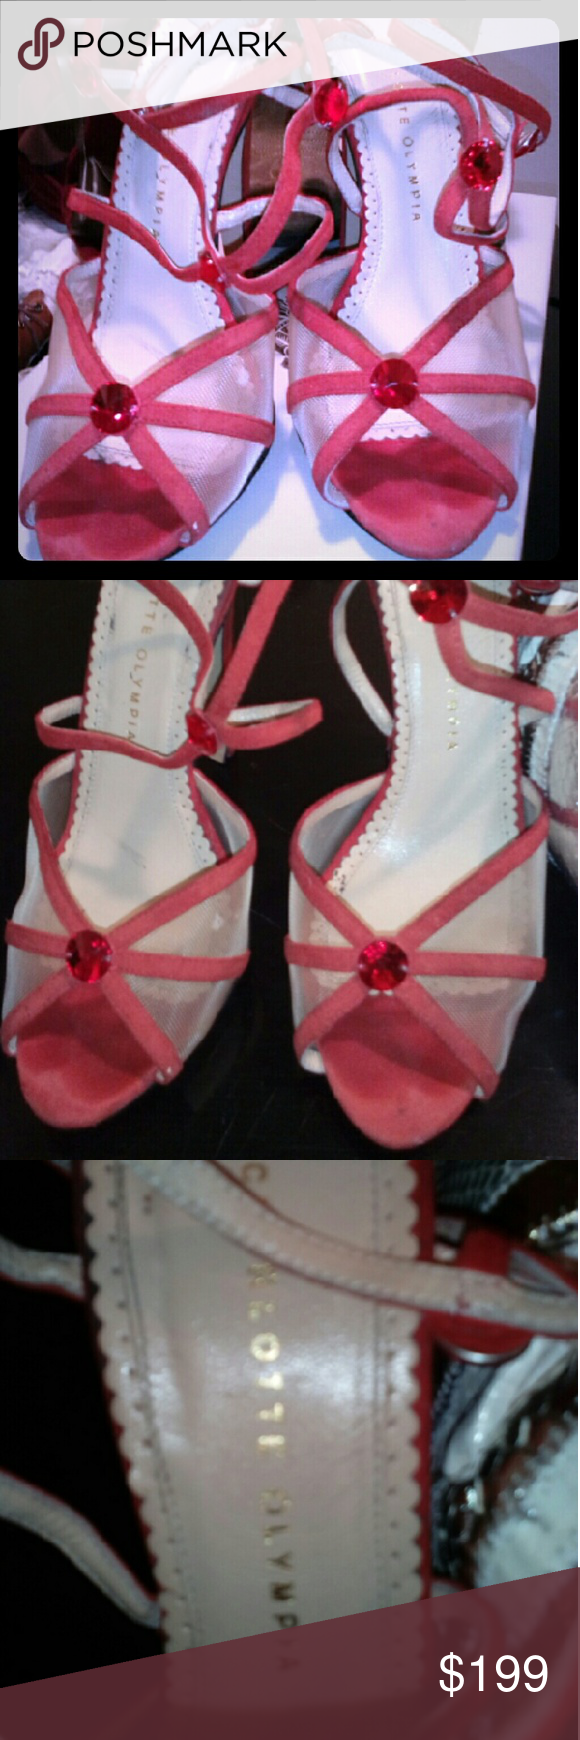 Charlotte Olympia shoes. Gently used. 7 cm  heels. Charlotte Olympia Shoes Heels